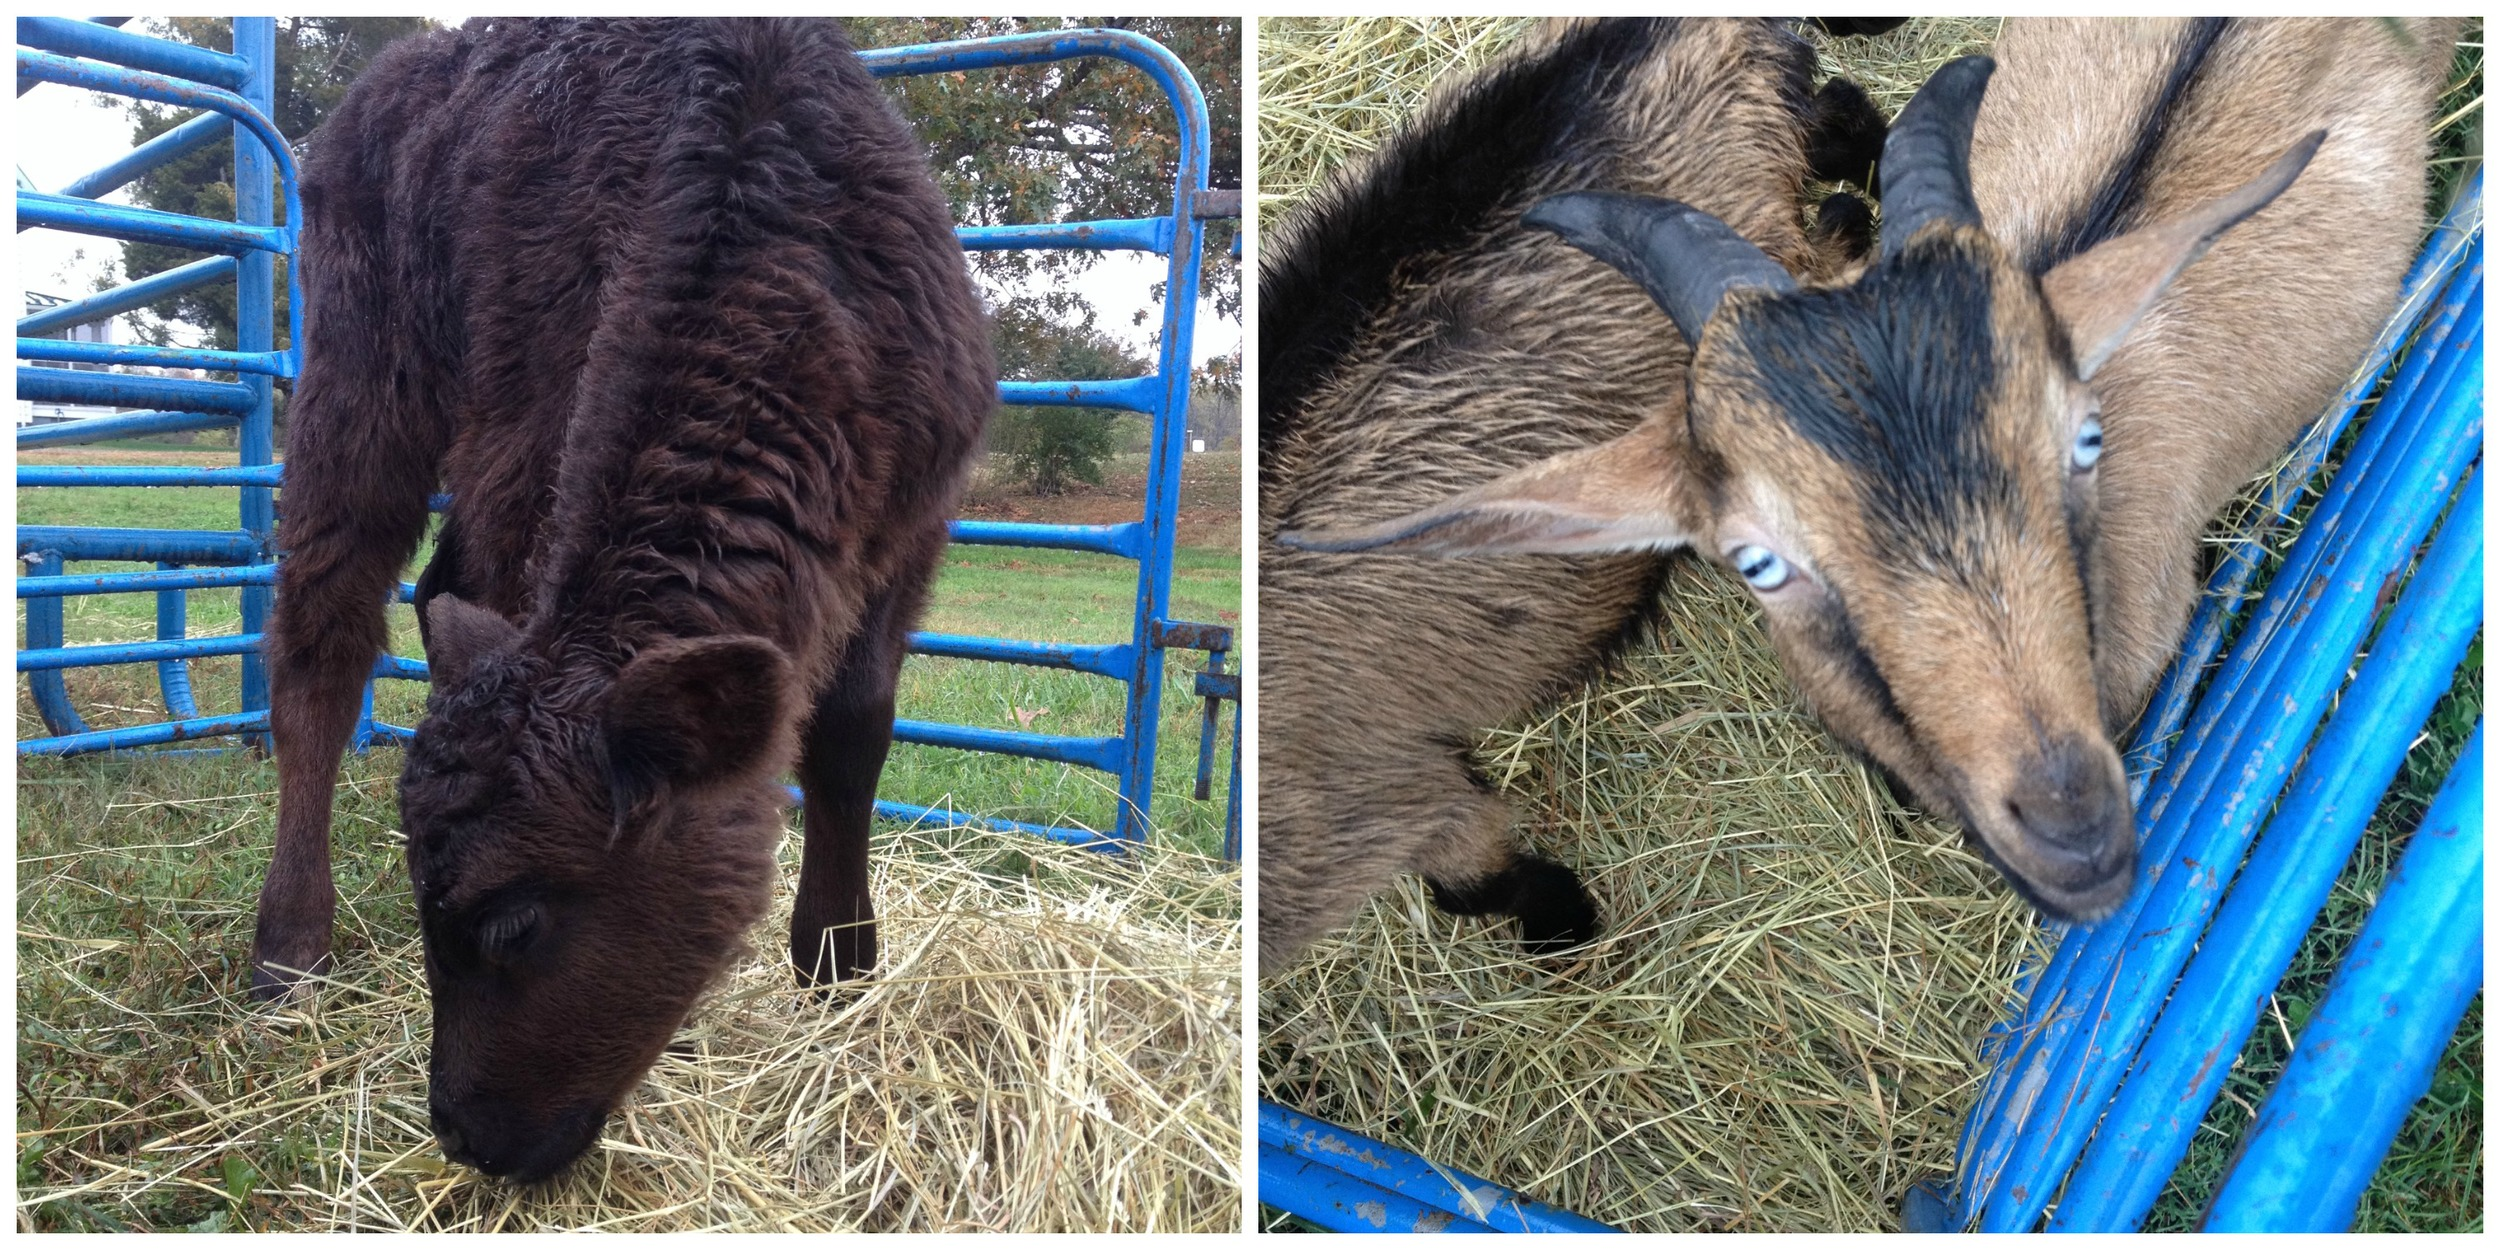 A few of the animals in the farm animal petting zoo the day of the opening.